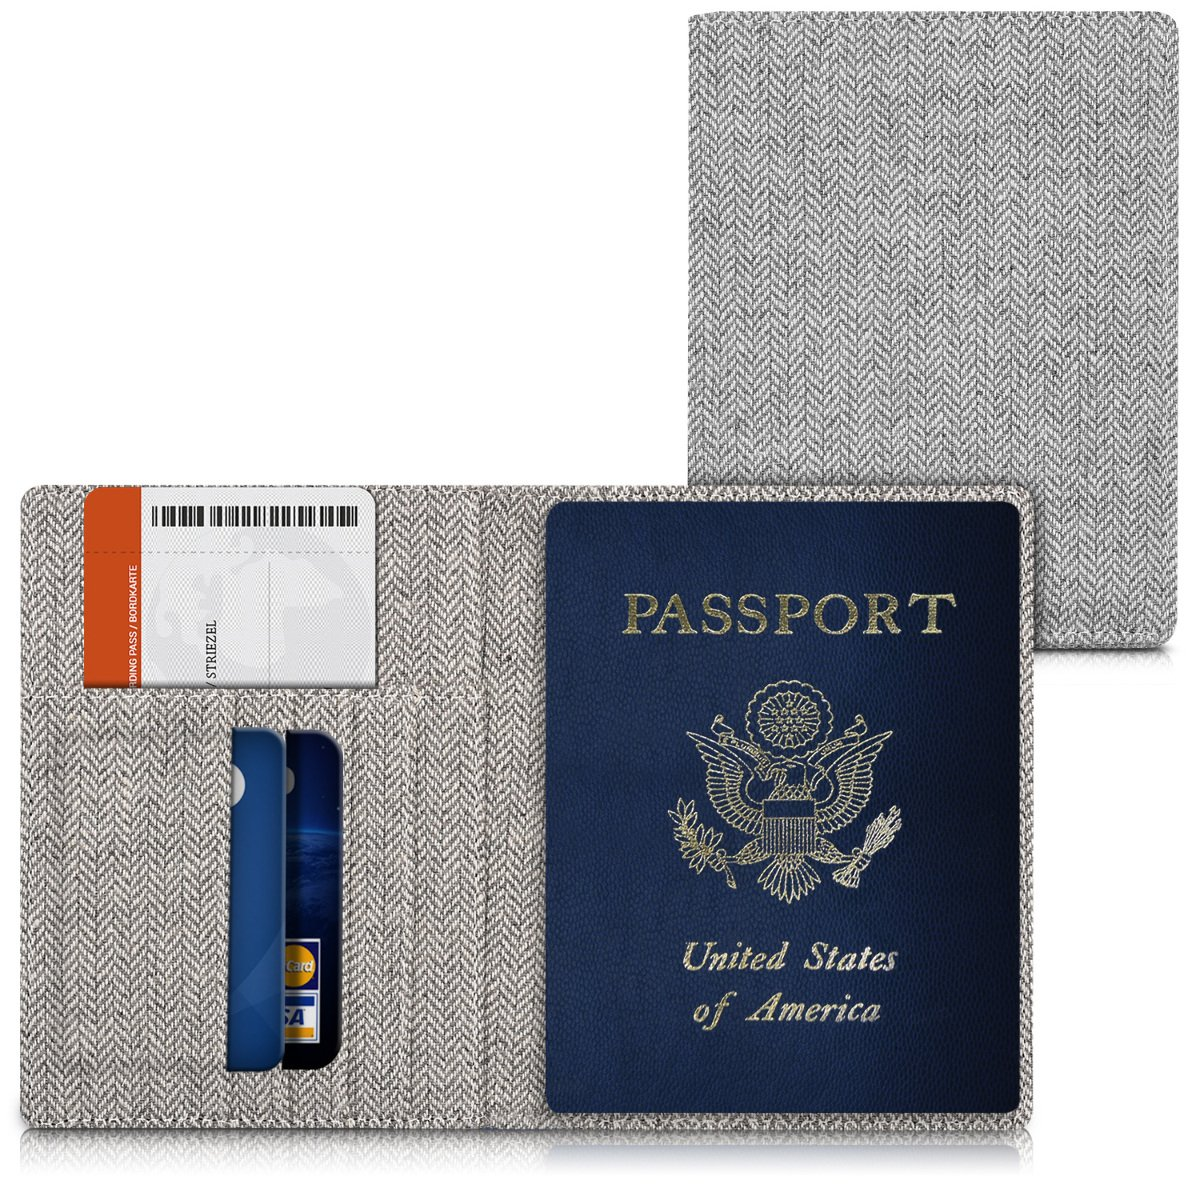 kwmobile passport case ID case card box credit cards portfolio fabric etui in light grey with Canvas